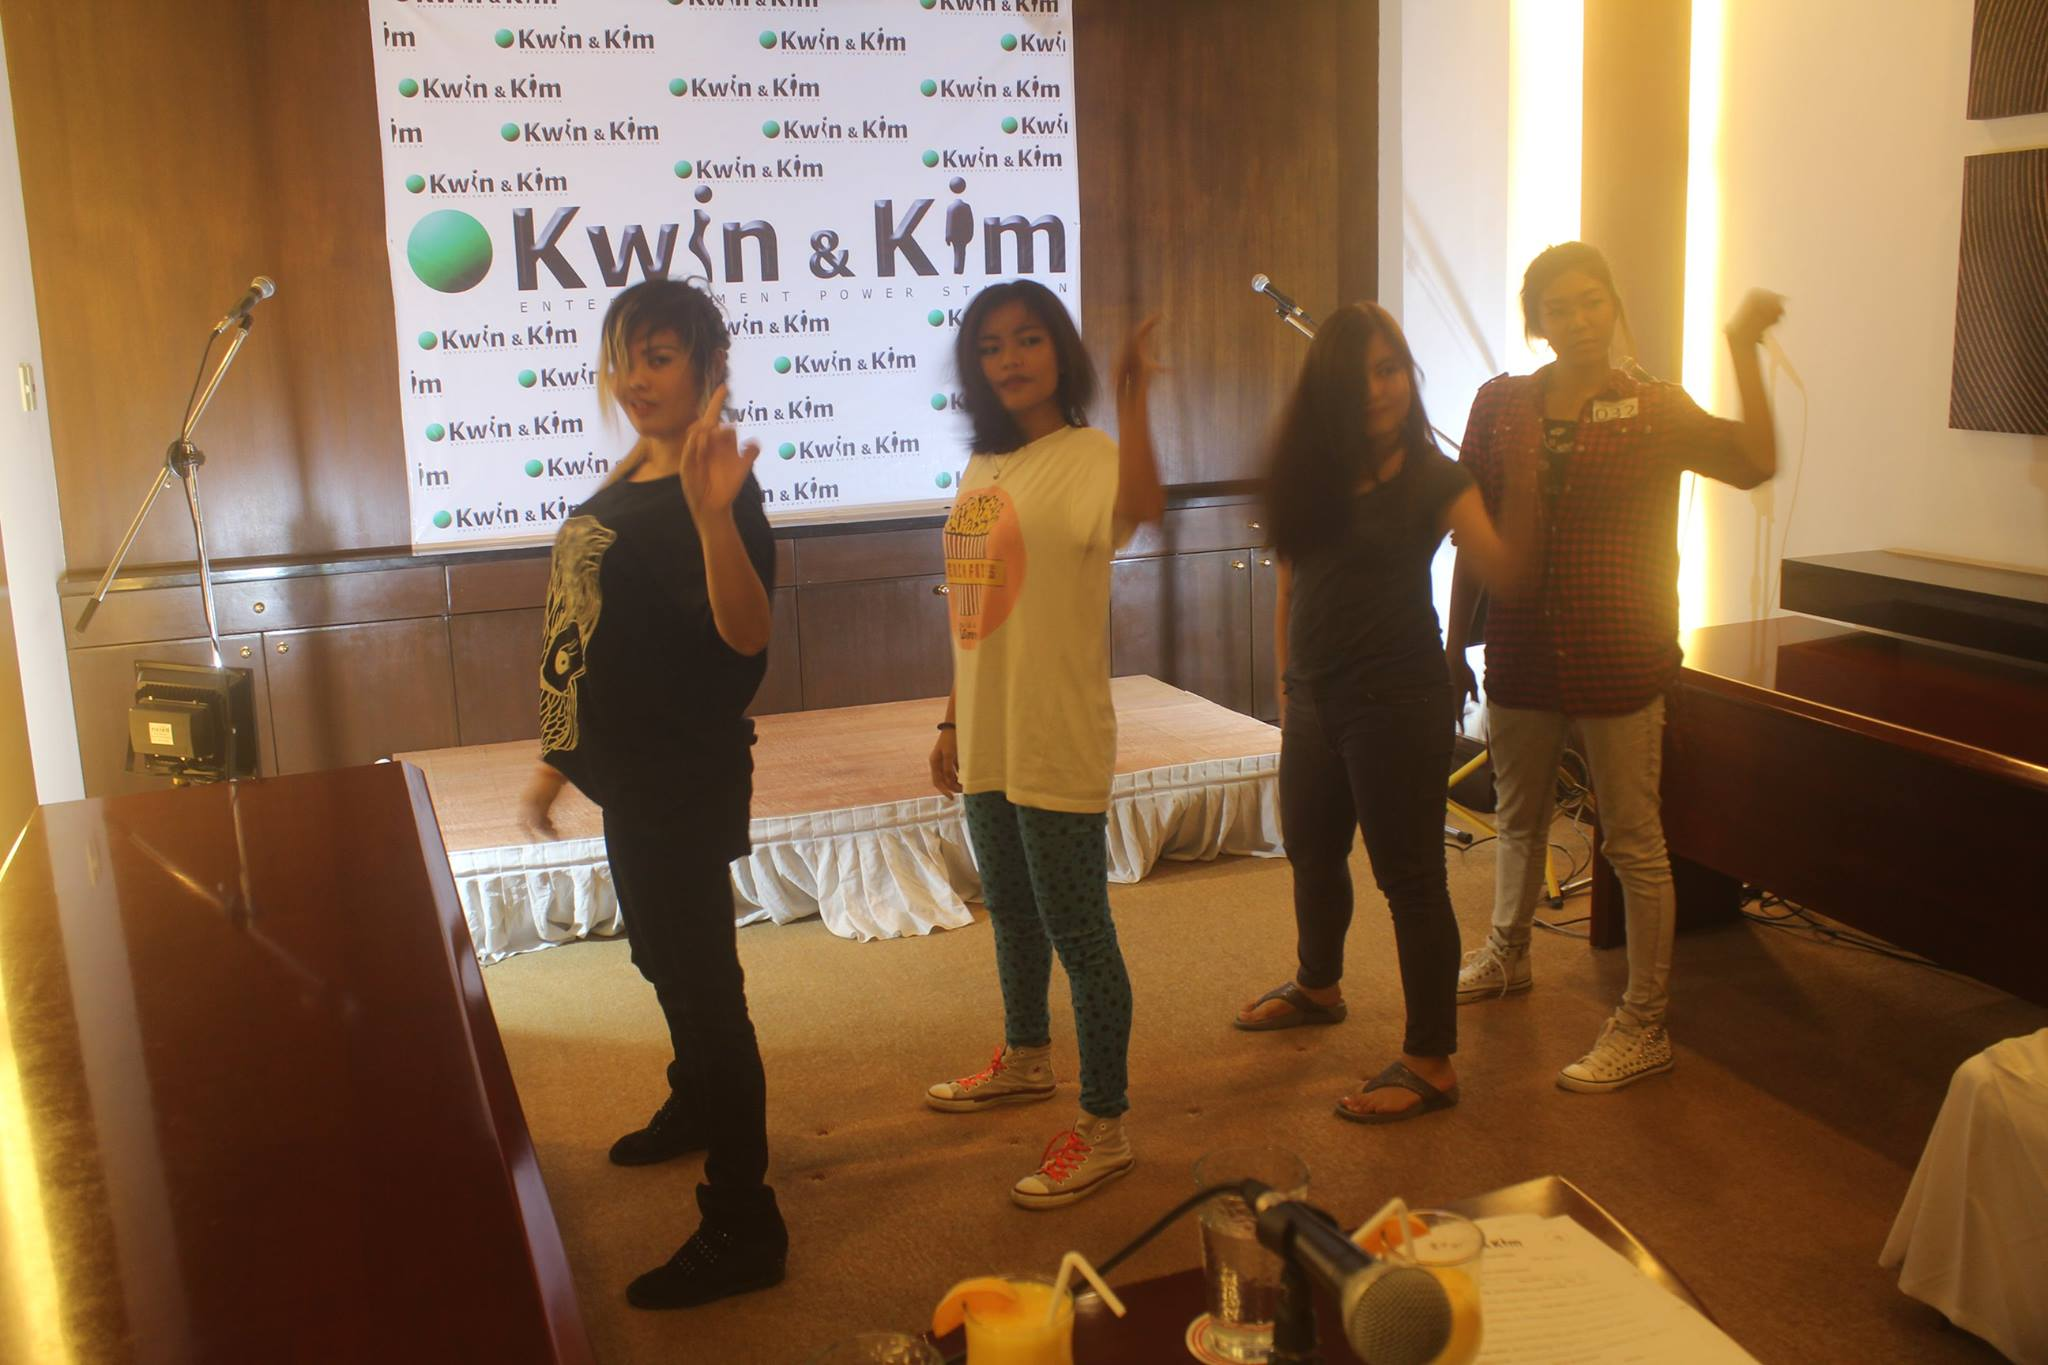 Kwin & Kim Entertainment Power Station Open Auditions